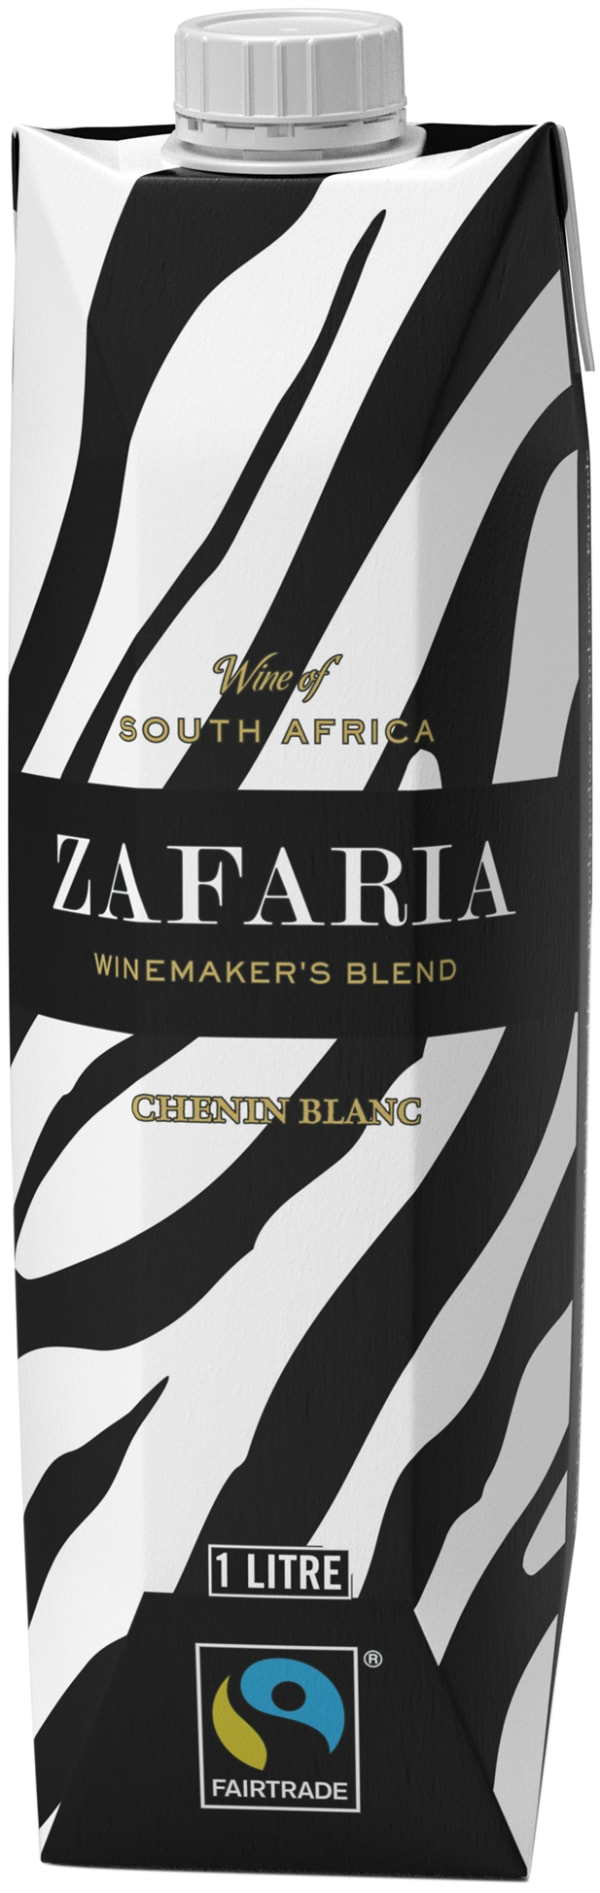 Zafrica Winemakers Blend Chenin Blanc 2017 carton package